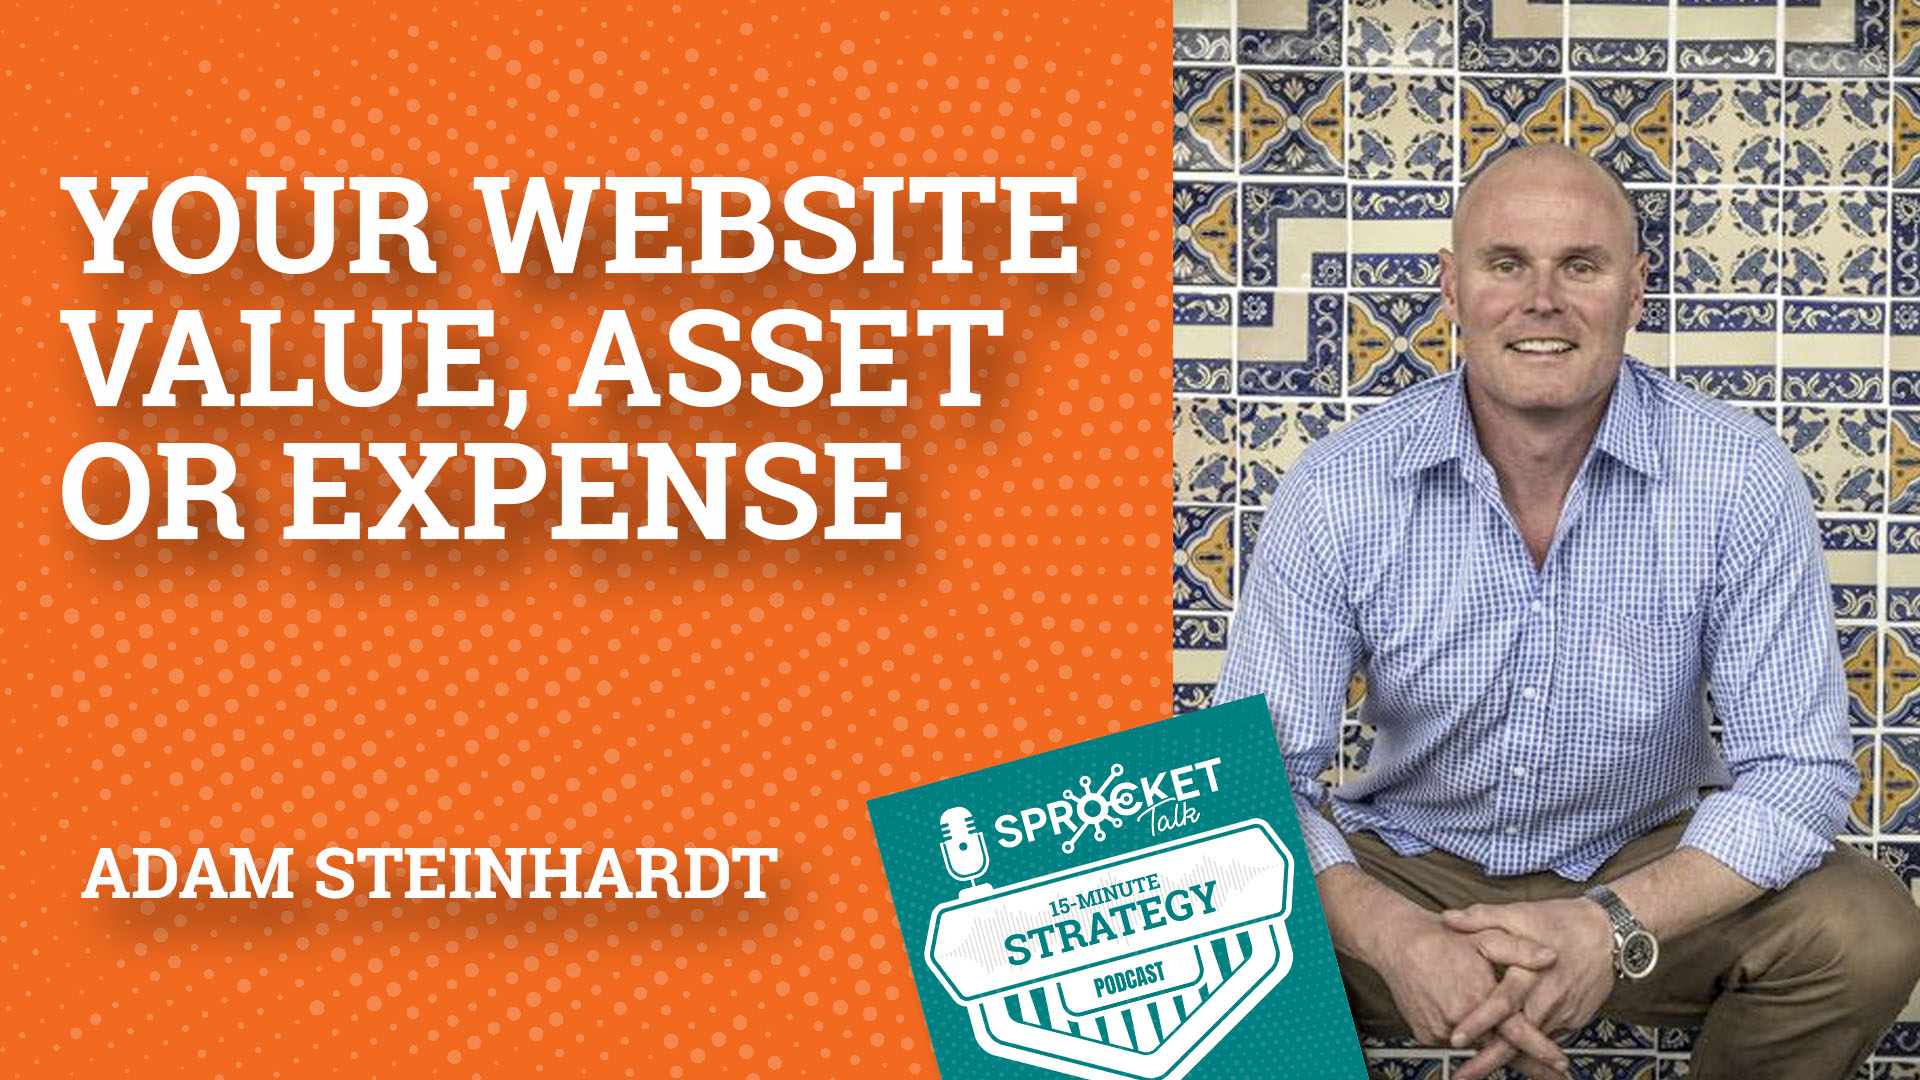 Adam Steinhardt on a Website Mindset Shift of Asset vs Expense